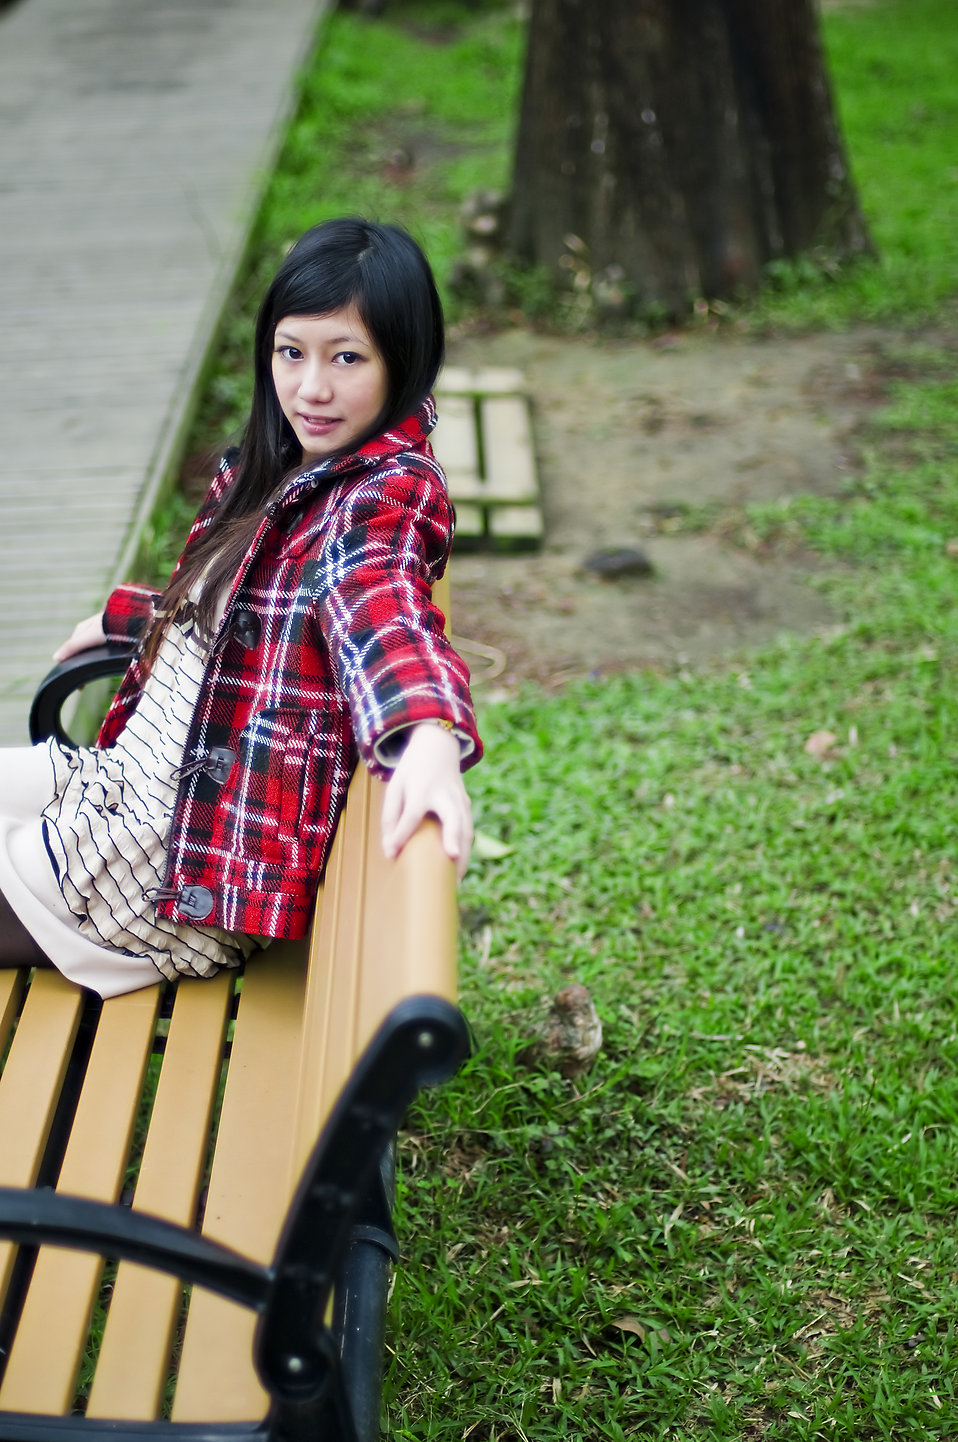 A beautiful Chinese girl posing on a bench : Free Stock Photo